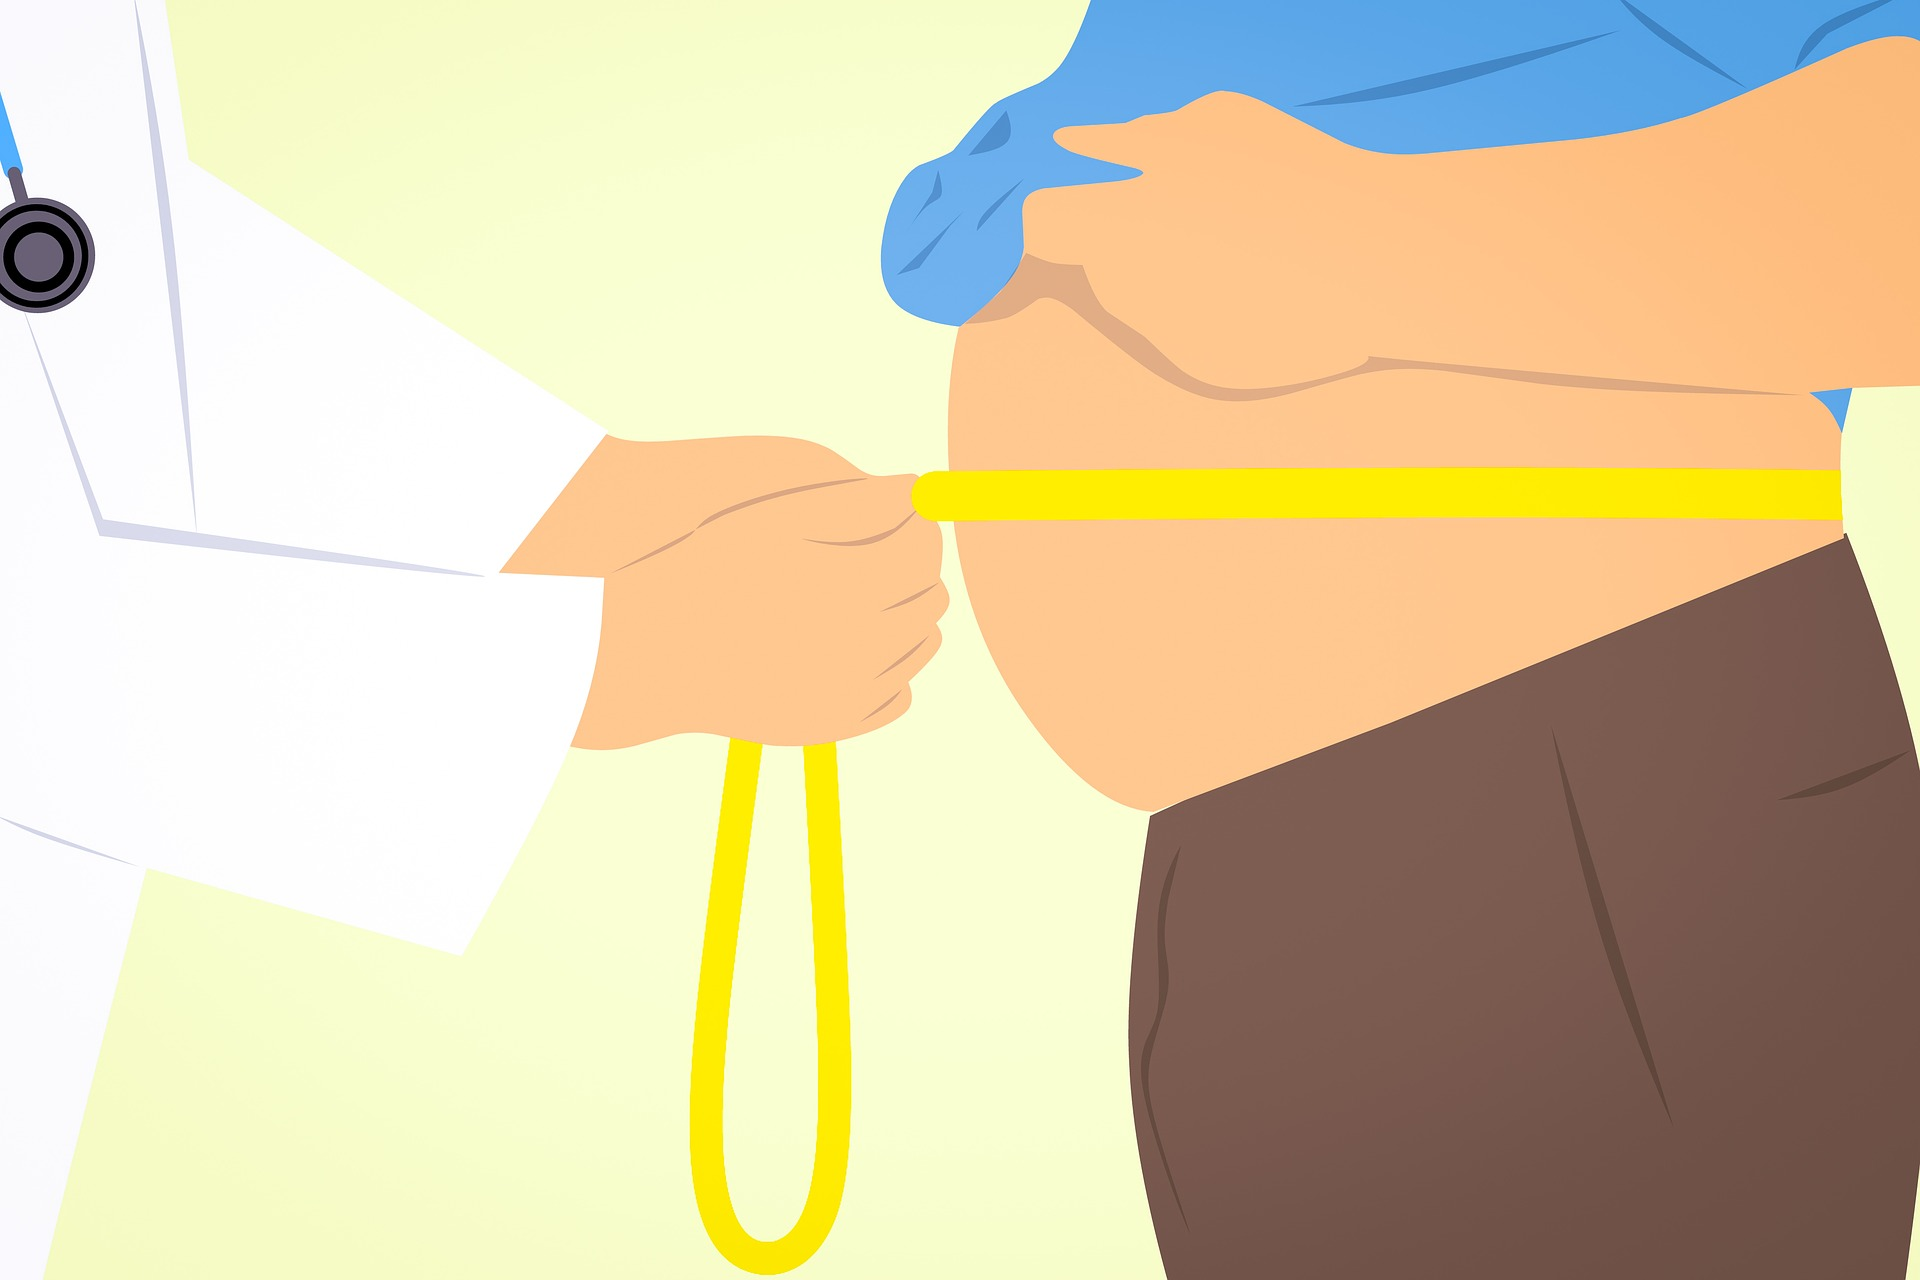 New studies add to growing evidence that obesity causes depression